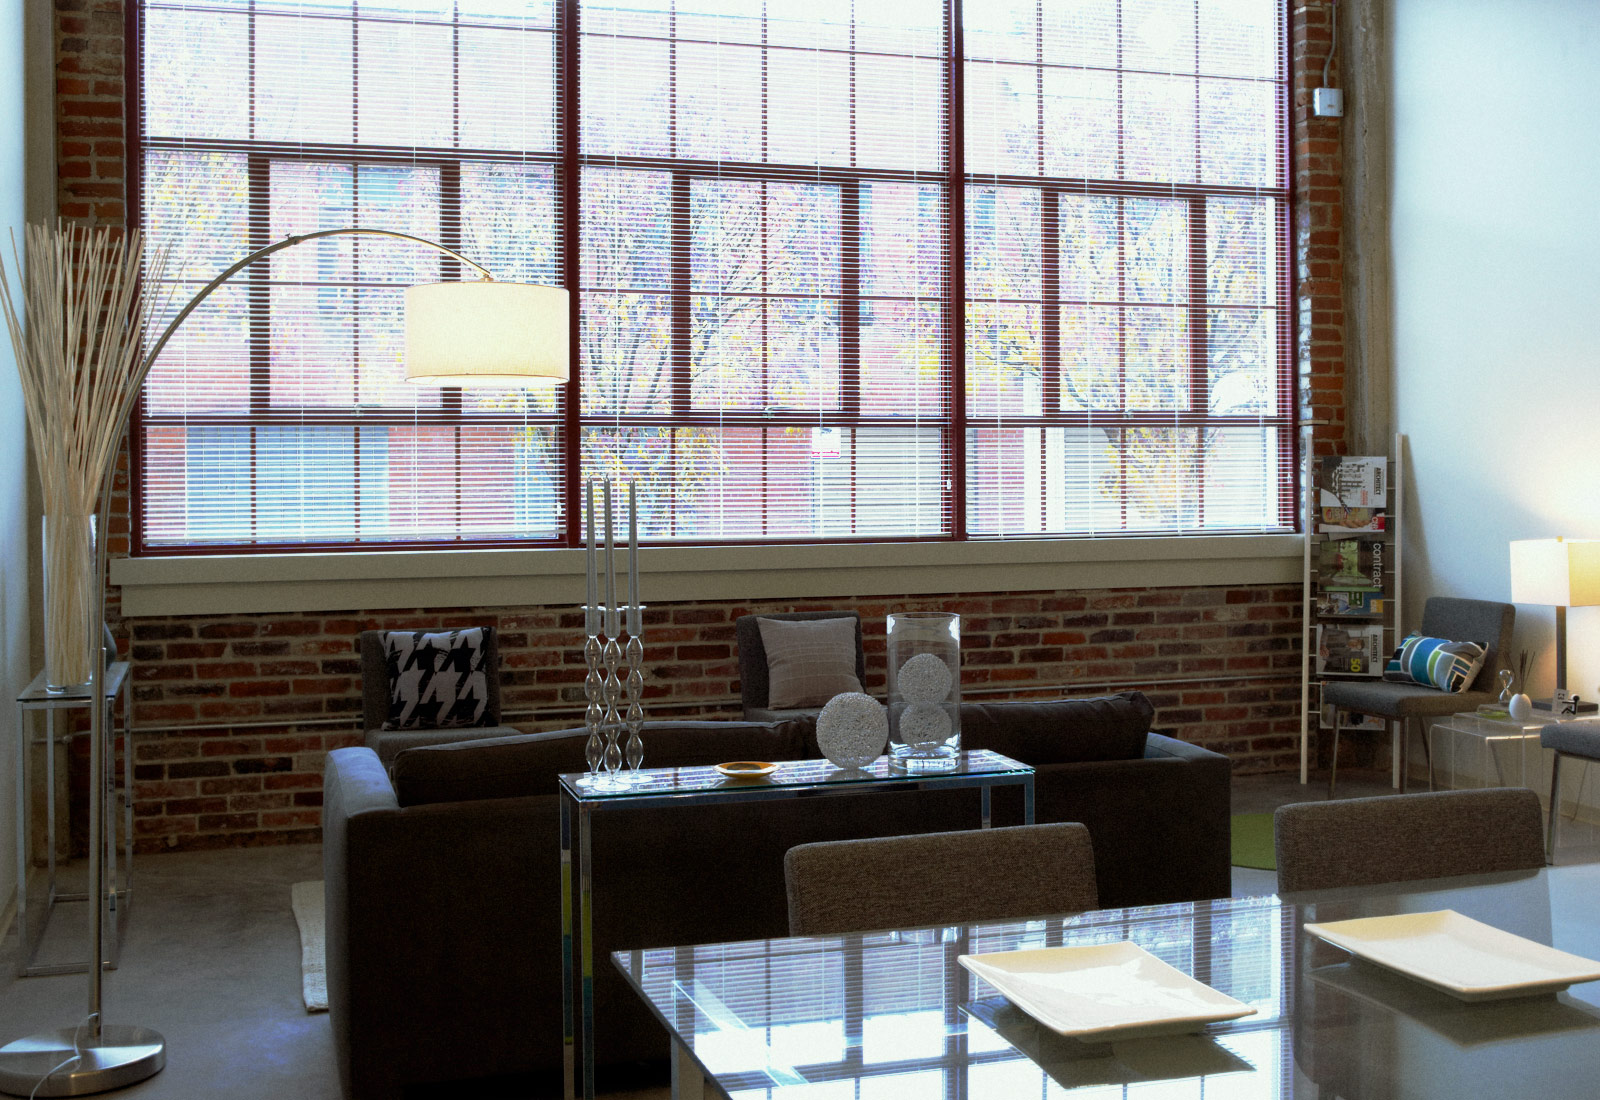 1818 Washington Saint Louis Loft Apartment